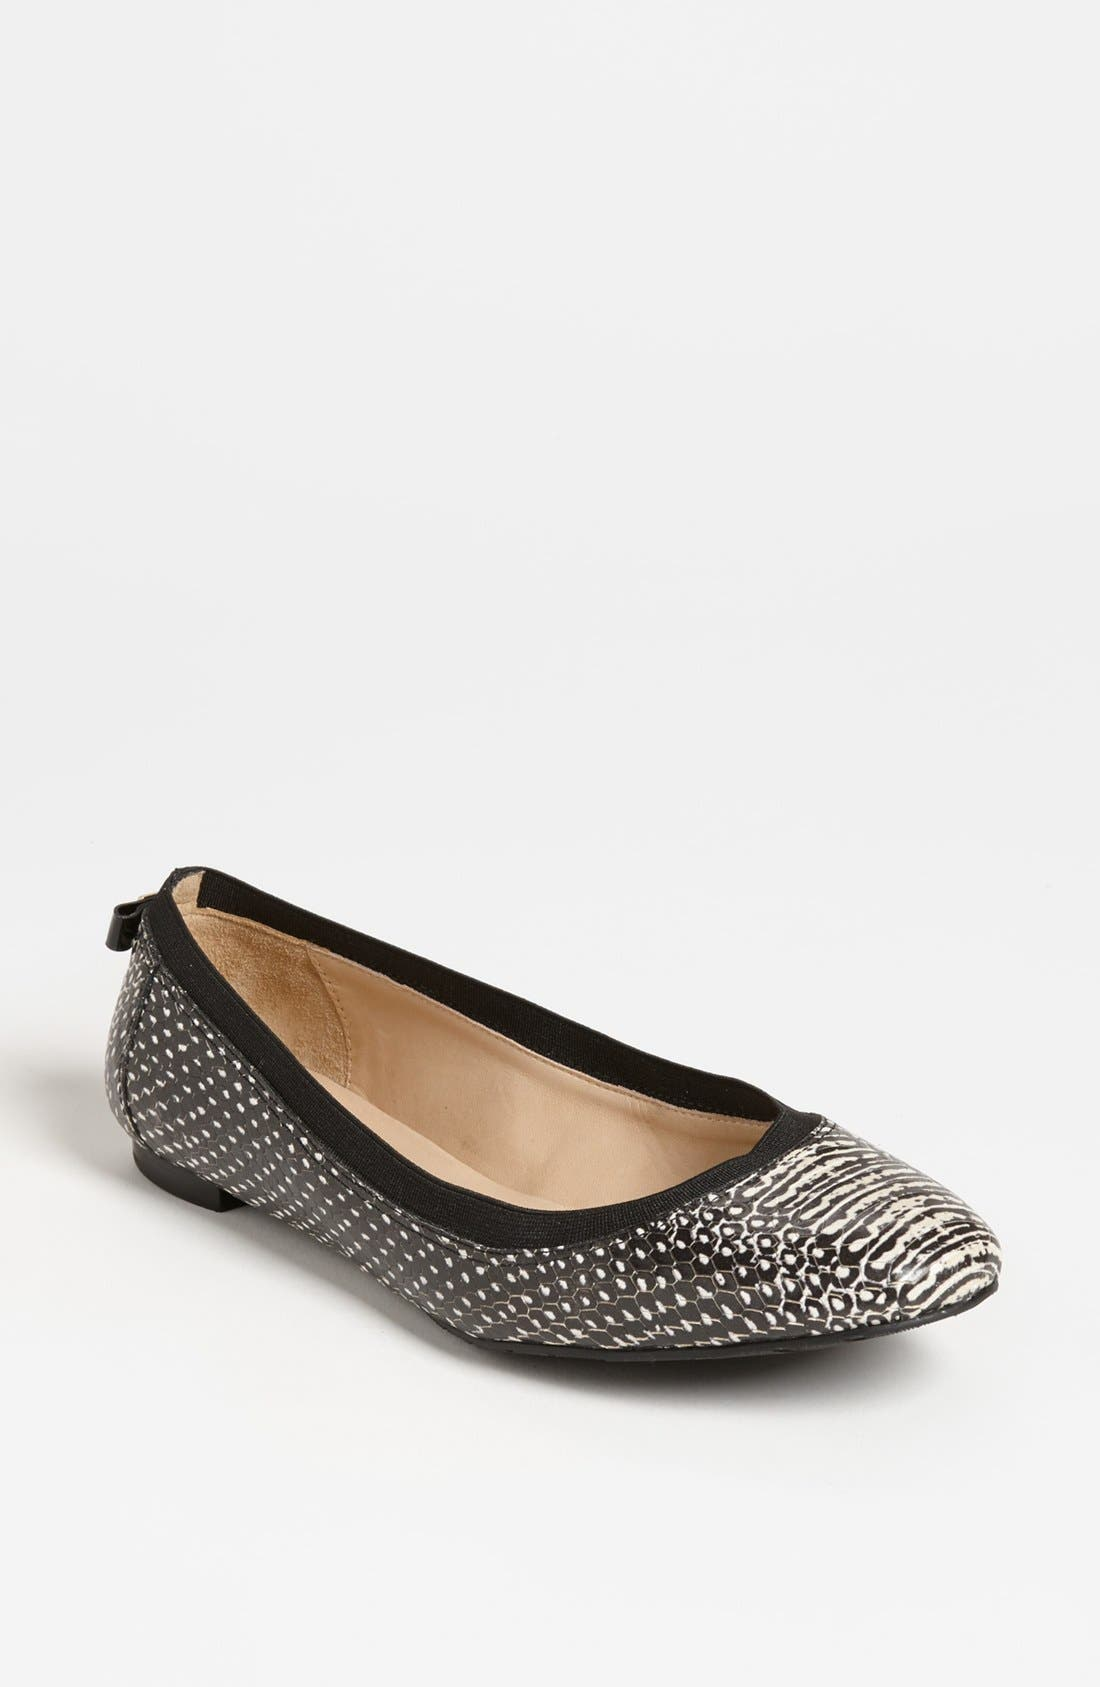 Alternate Image 1 Selected - kate spade new york 'taffy' flat